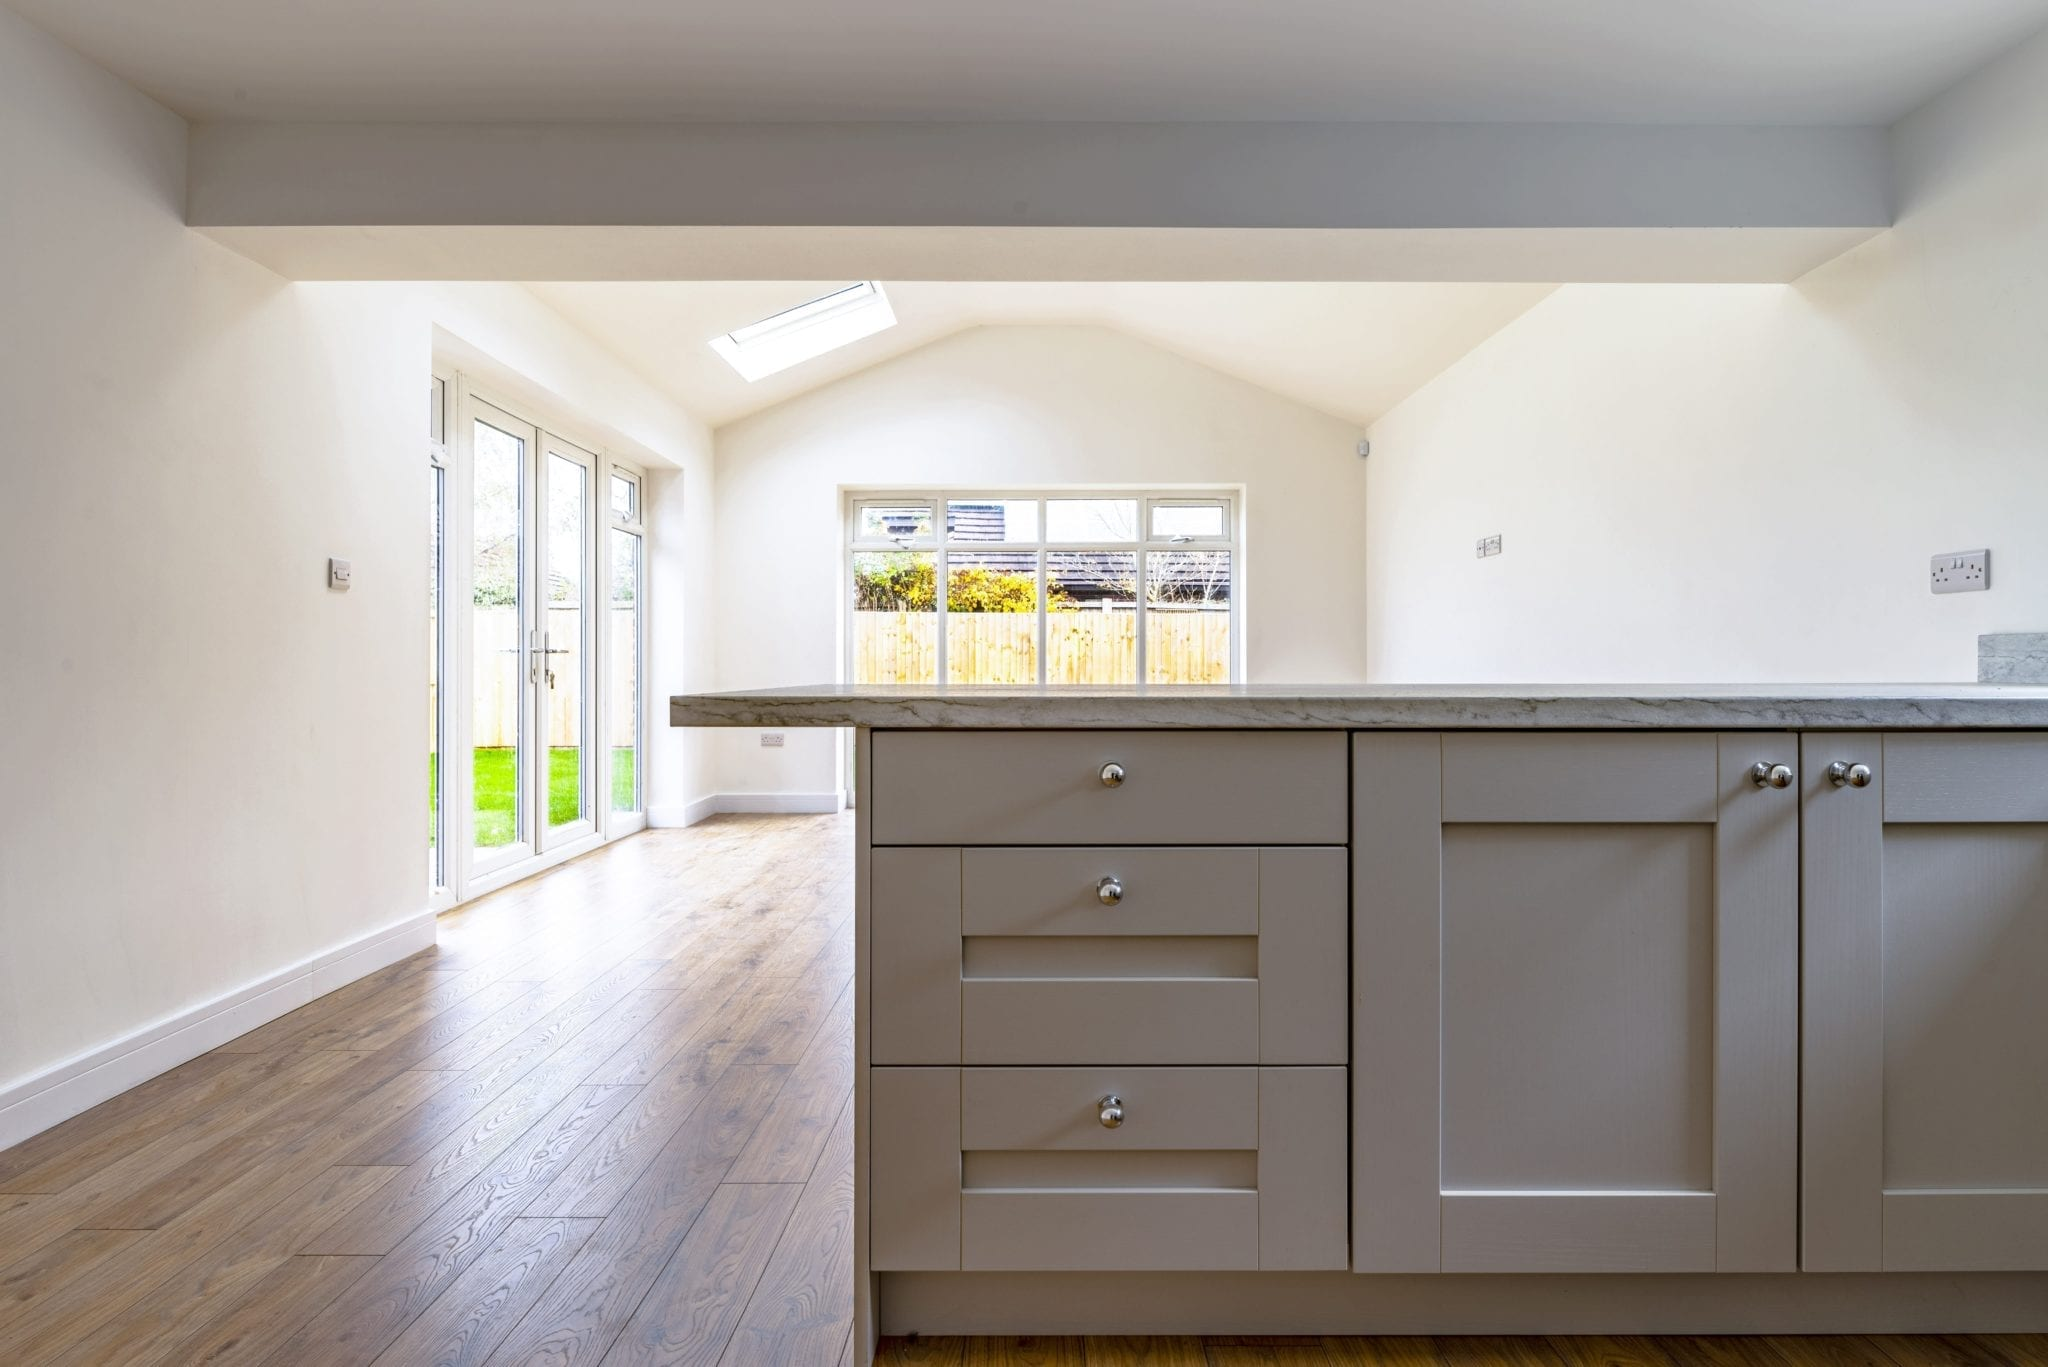 new kitchen and open plan living space